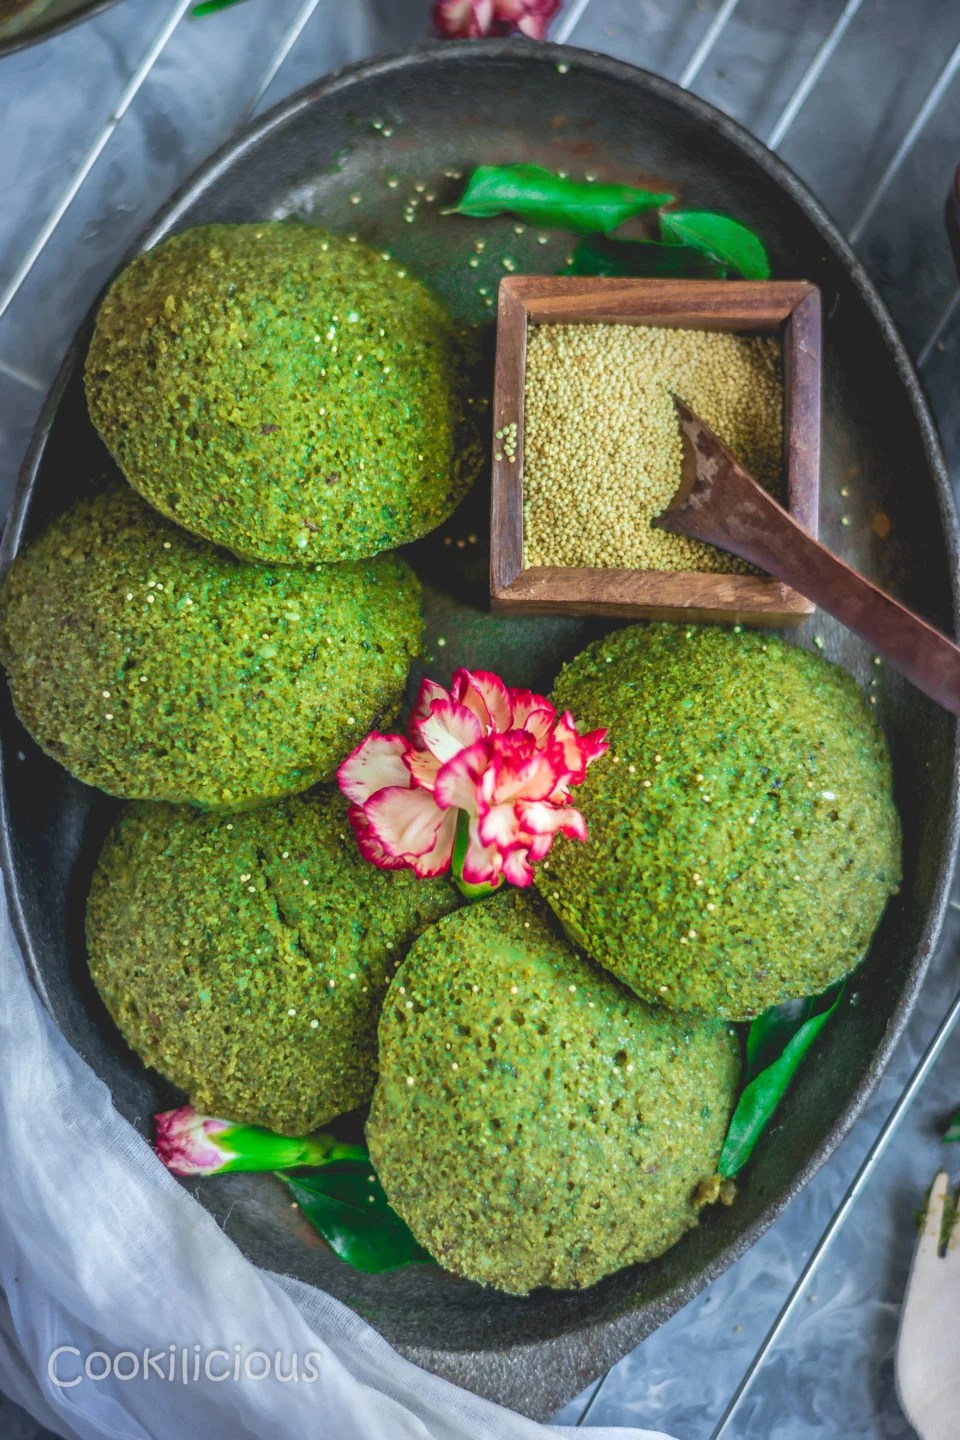 top angle shot of an oval tray with Amaranth Potato Idli and a flower on top along with a wooden bowl filled with amaranth